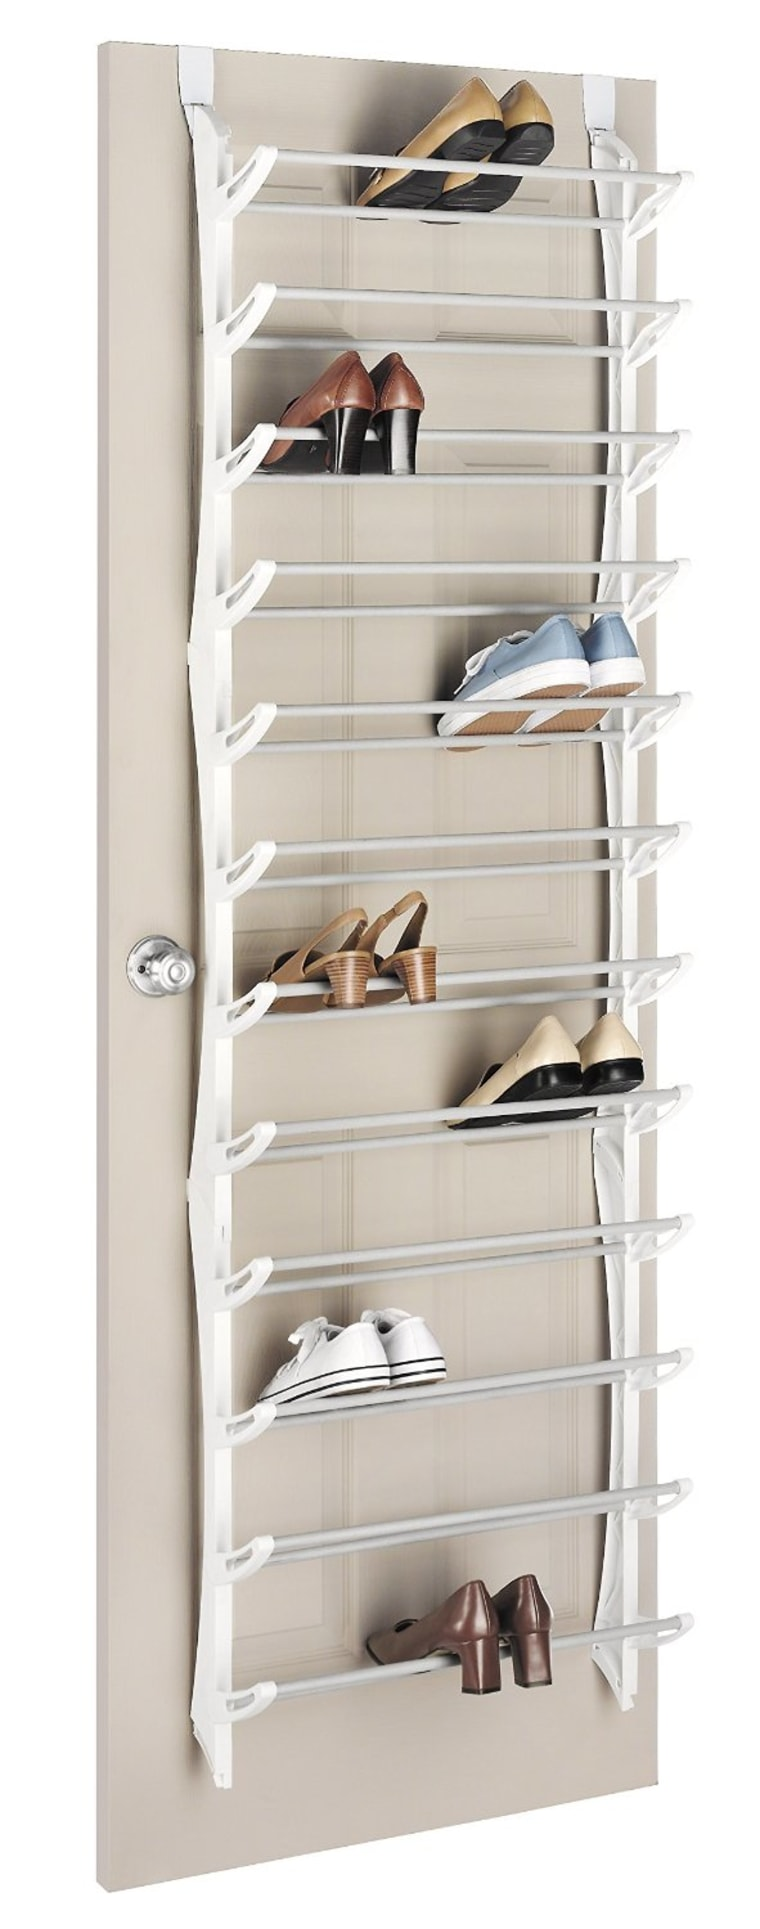 The 56 best products to organize every closet in your house